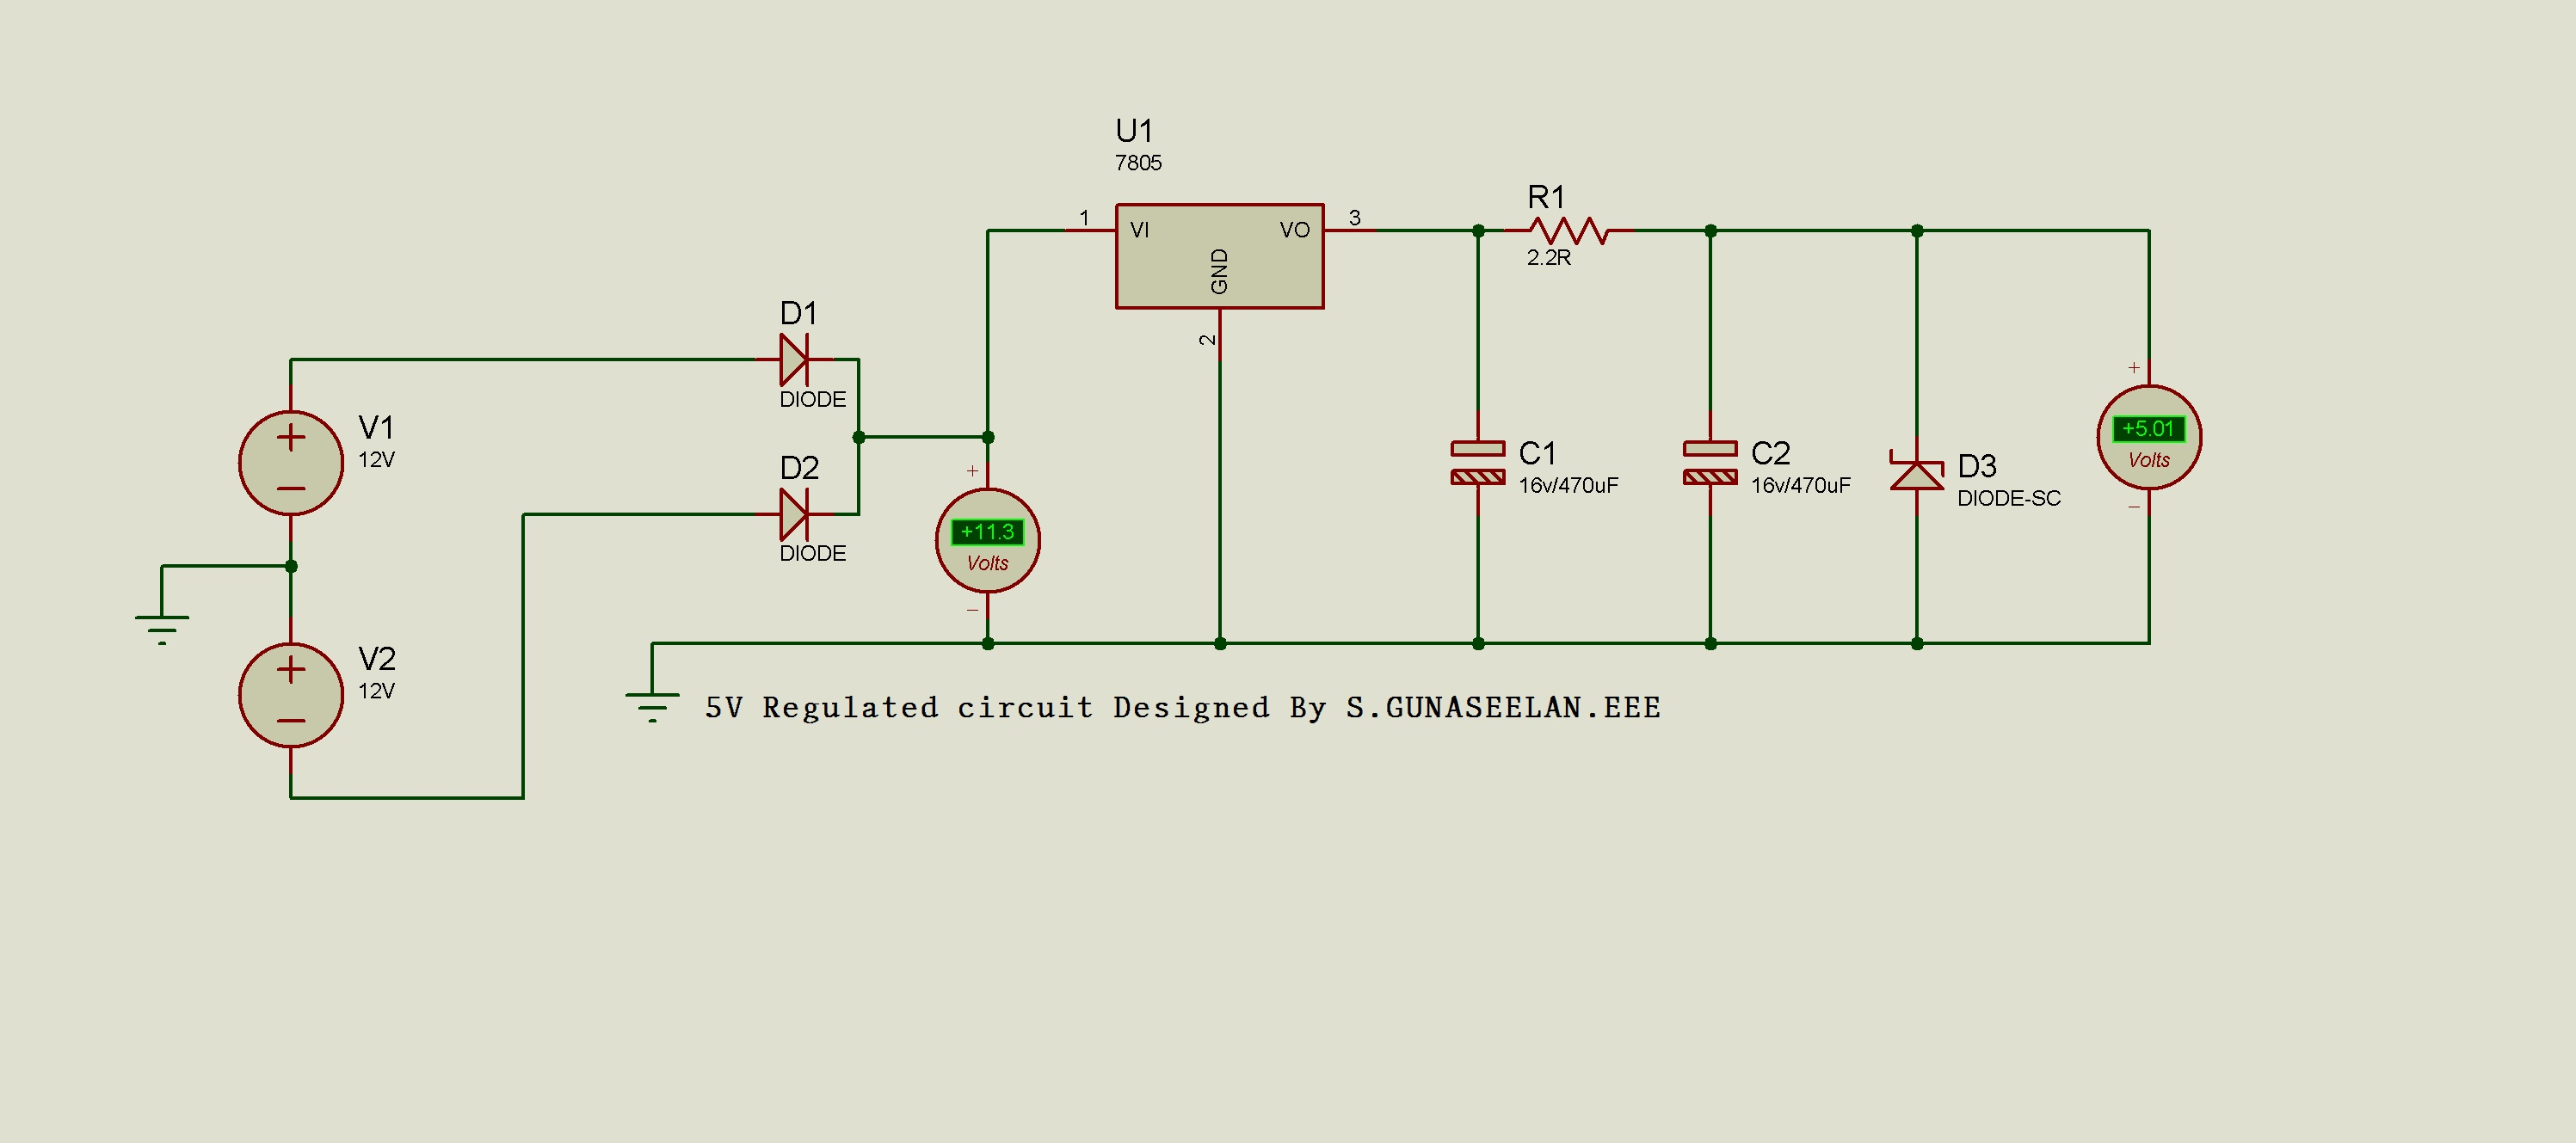 hight resolution of voltage regulator ic maintains the output voltage at a constant value 7805 ic avoltage regulator integrated circuit ic is a member of 78xx